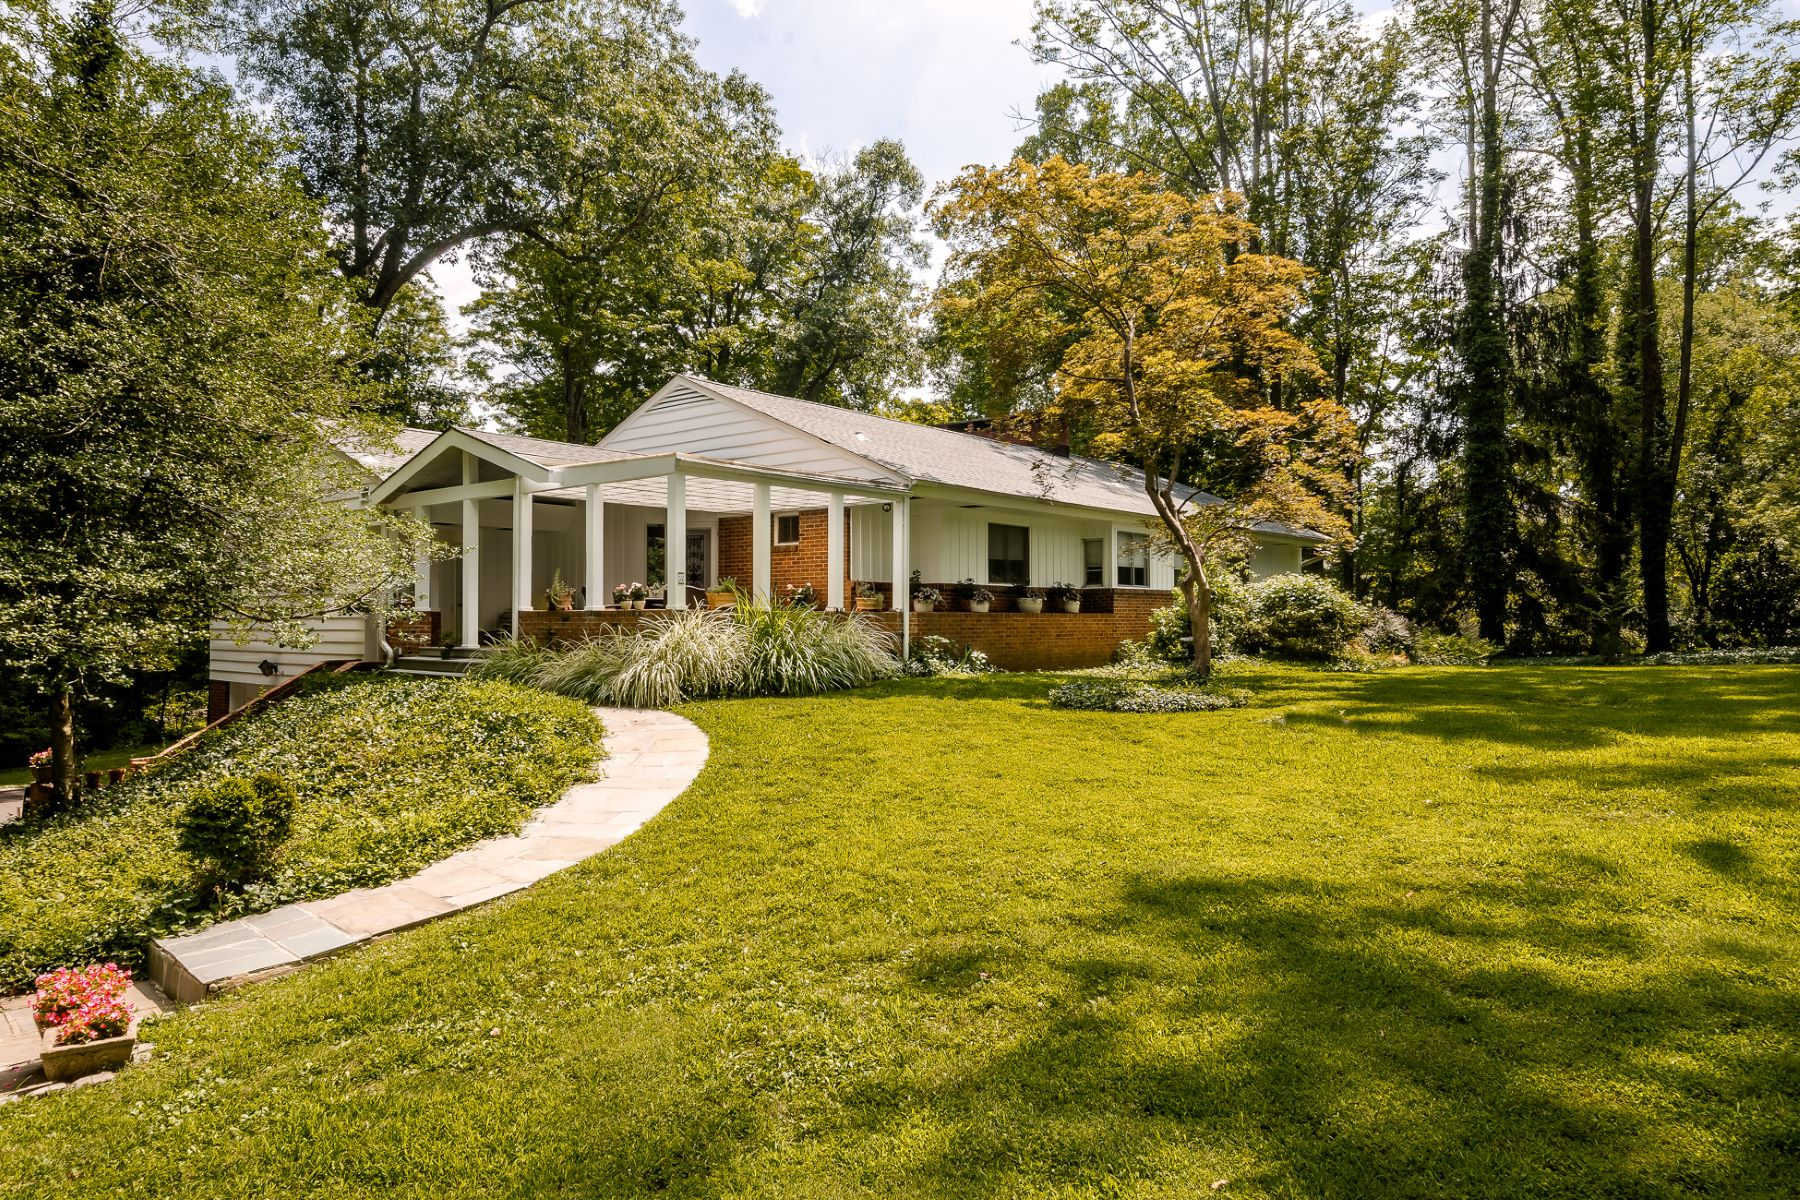 Property for Sale at Mid-Century Lines and Open Concept 52 Winant Road, Princeton, New Jersey 08540 United States